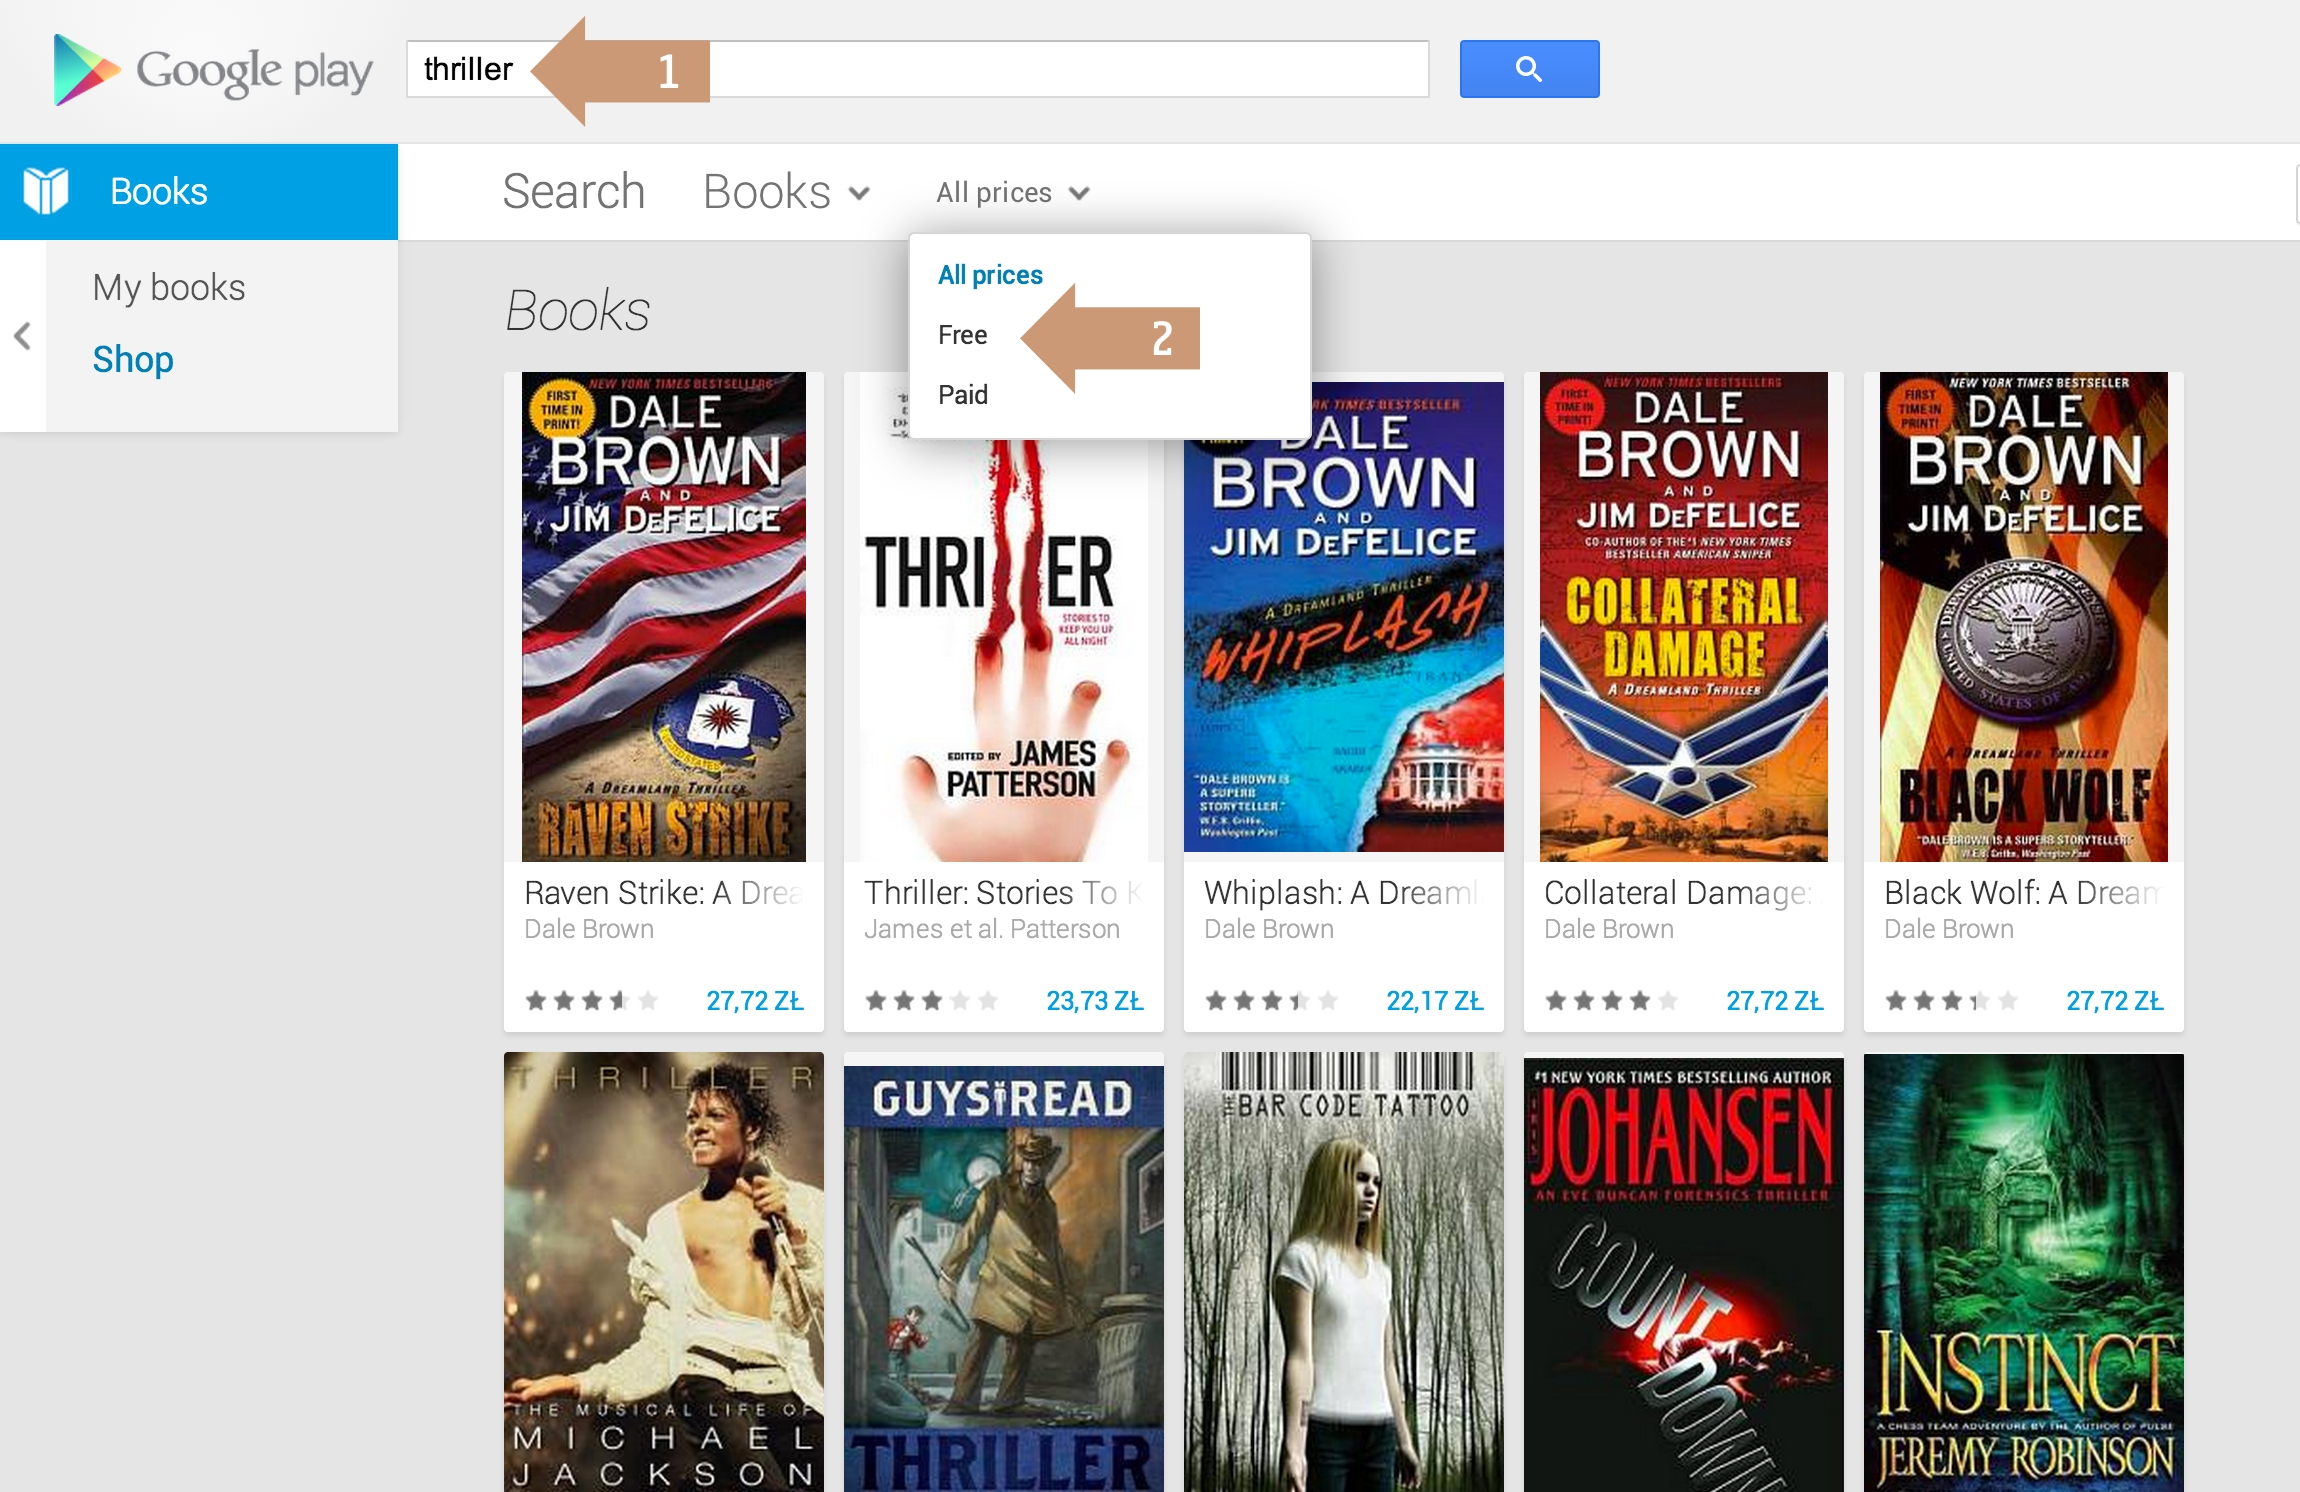 3 ways to find free ebooks on Google Play